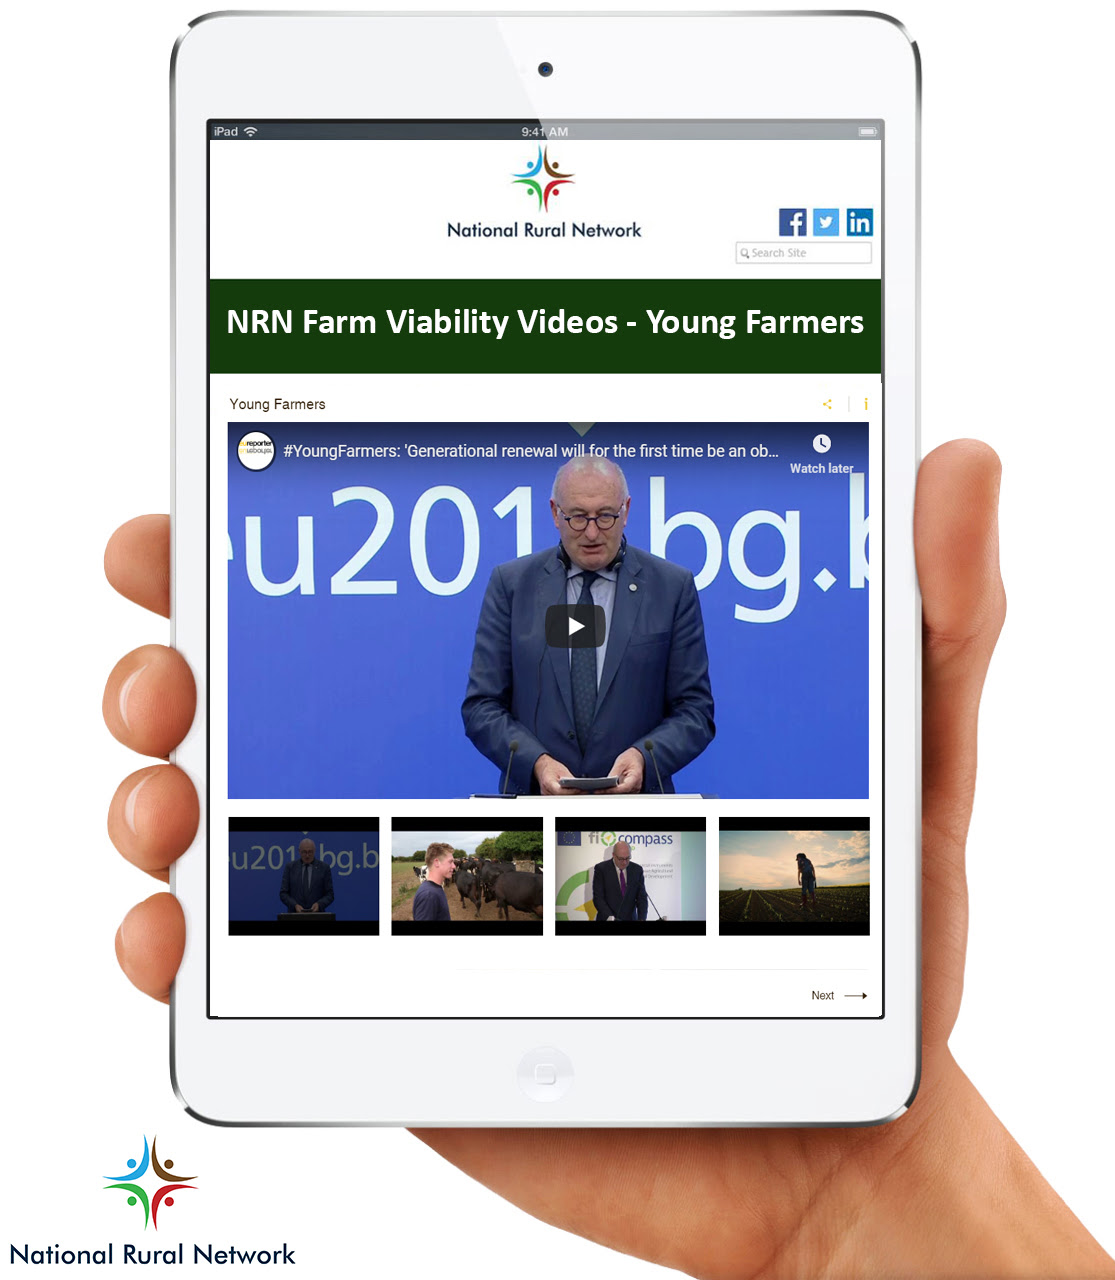 Image shows young farmer videos on NRN website